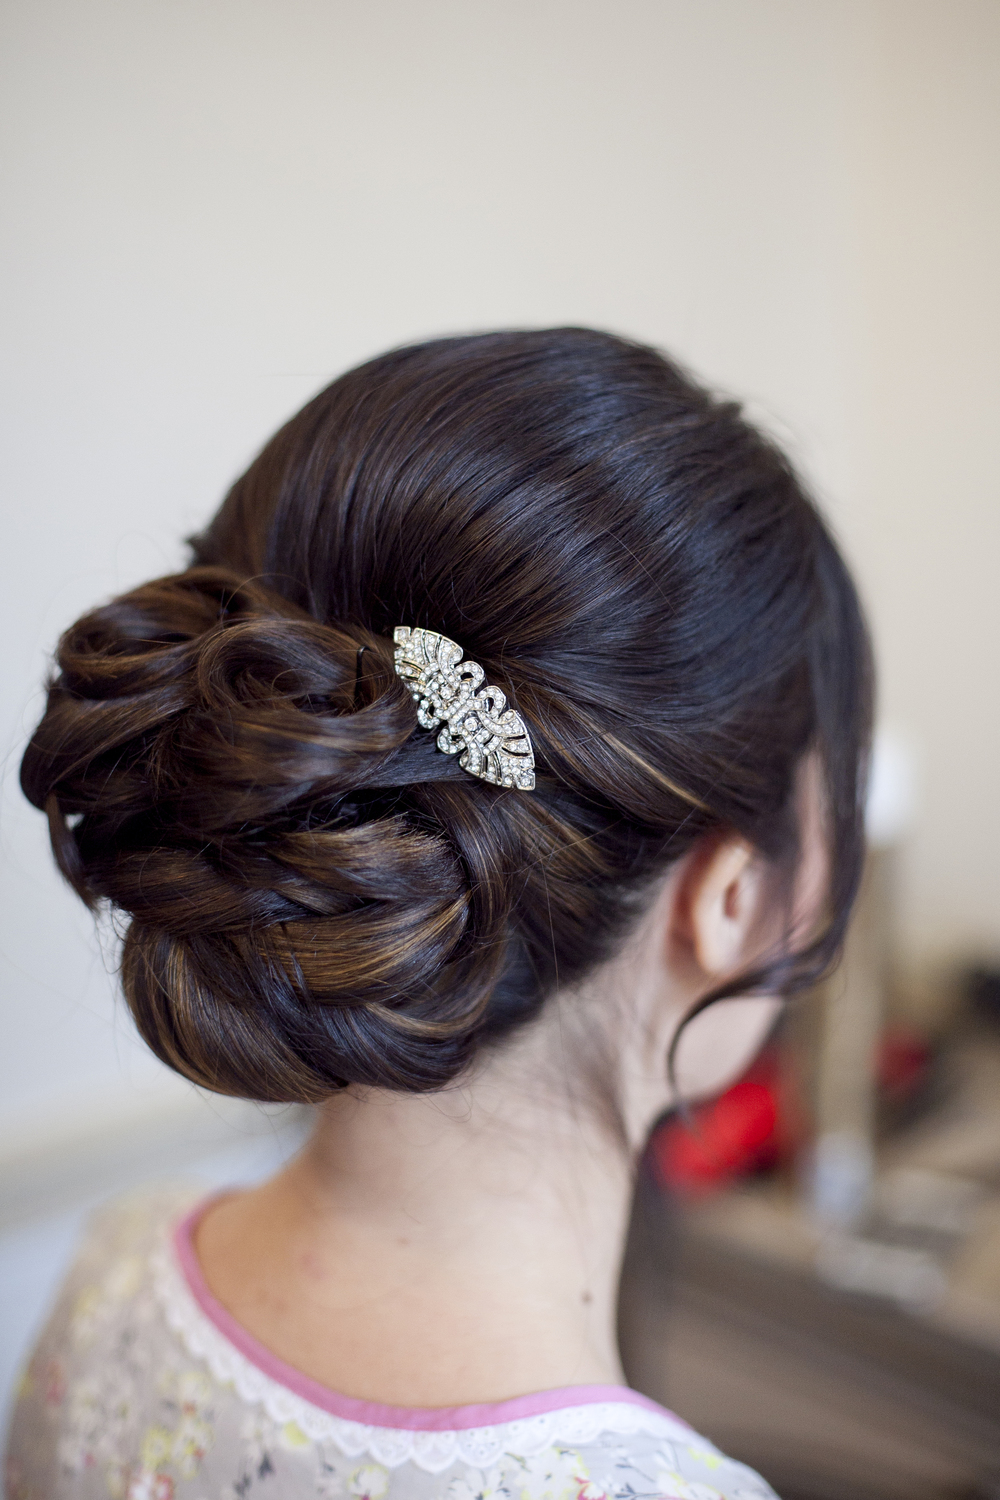 Hair Up With Broach Hair Accesory